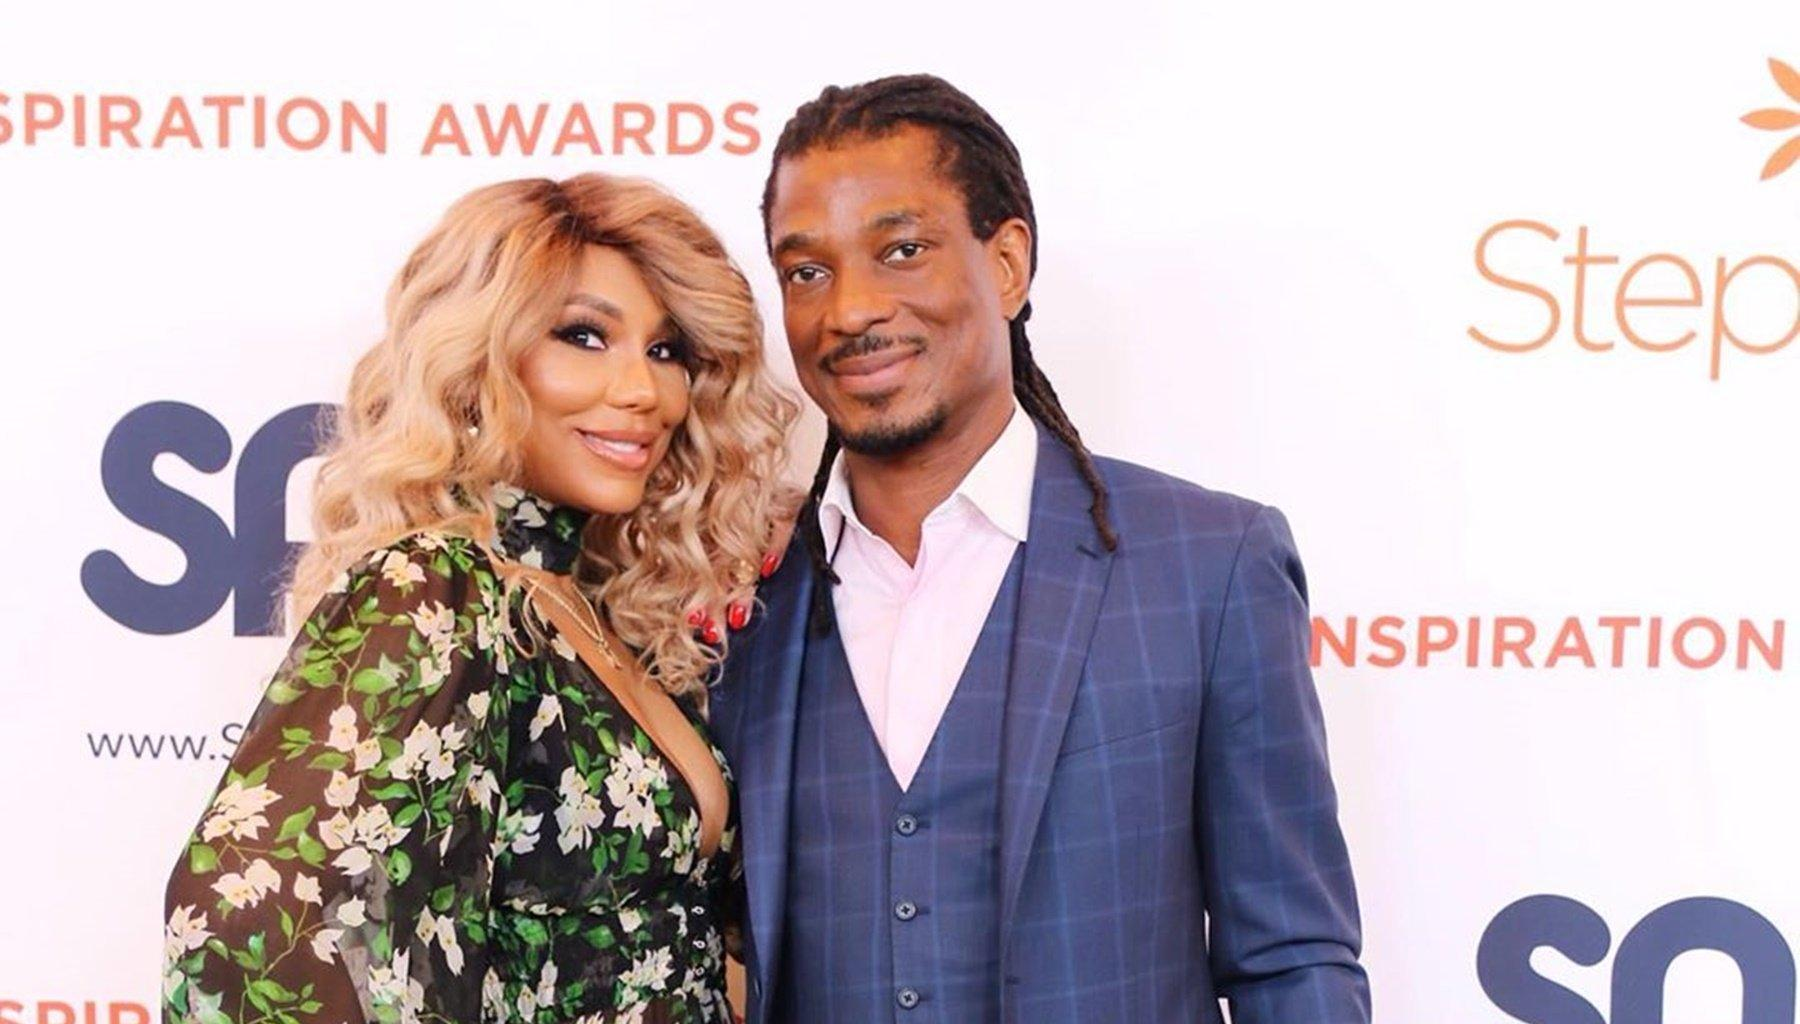 Tamar Braxton's BF, David Adefeso, Seems To Be Into Financial Coaching These Days